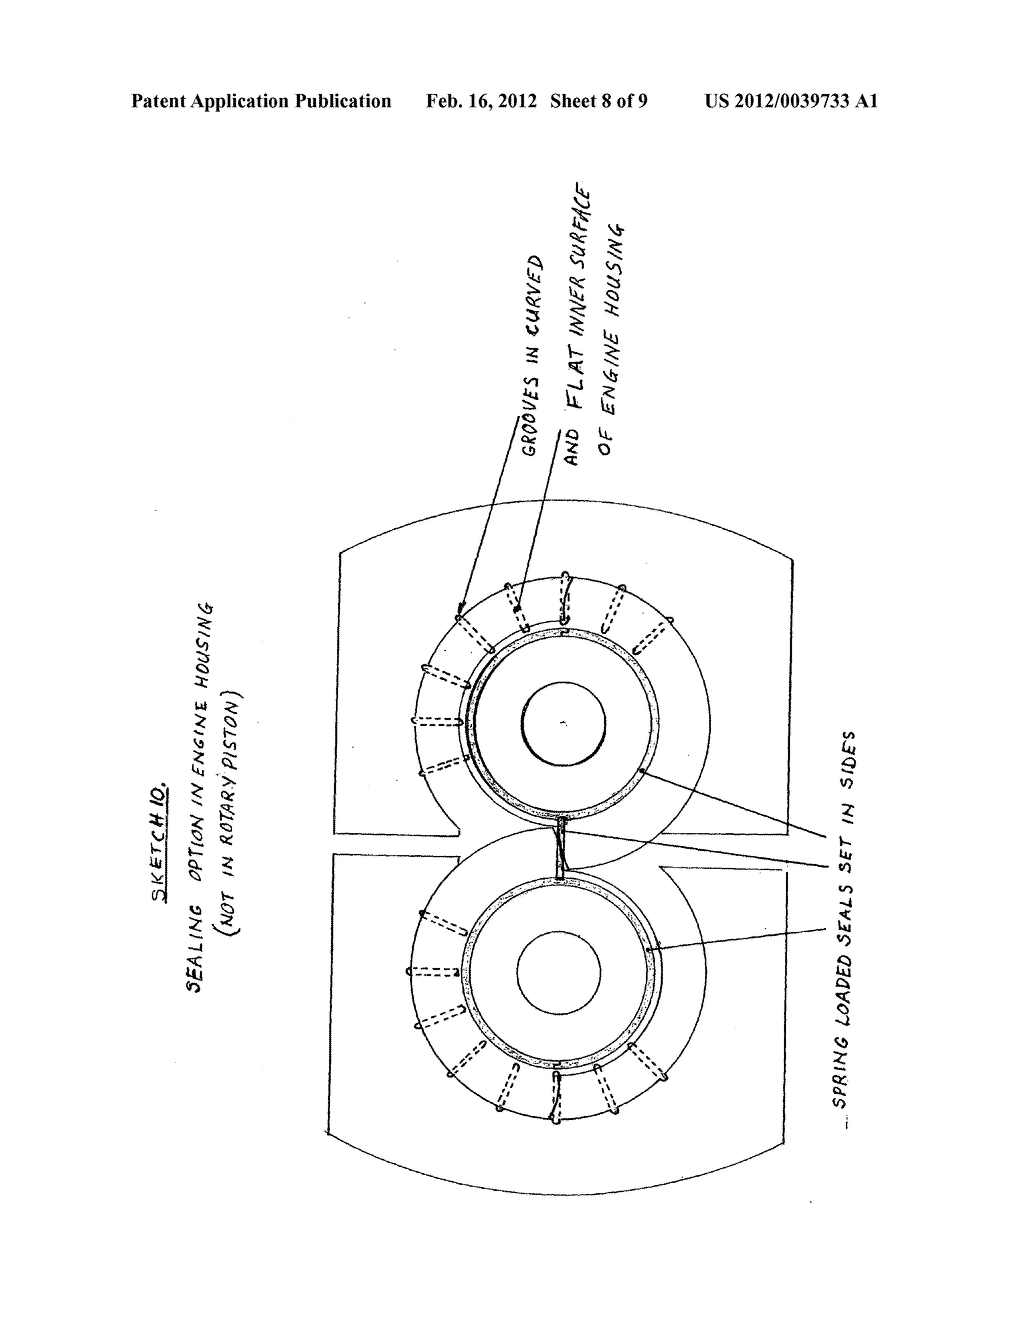 hight resolution of rotary piston steam engine with balanced rotary variable inlet cut off valve and secondary expansion without back pressure on primary expansion diagram